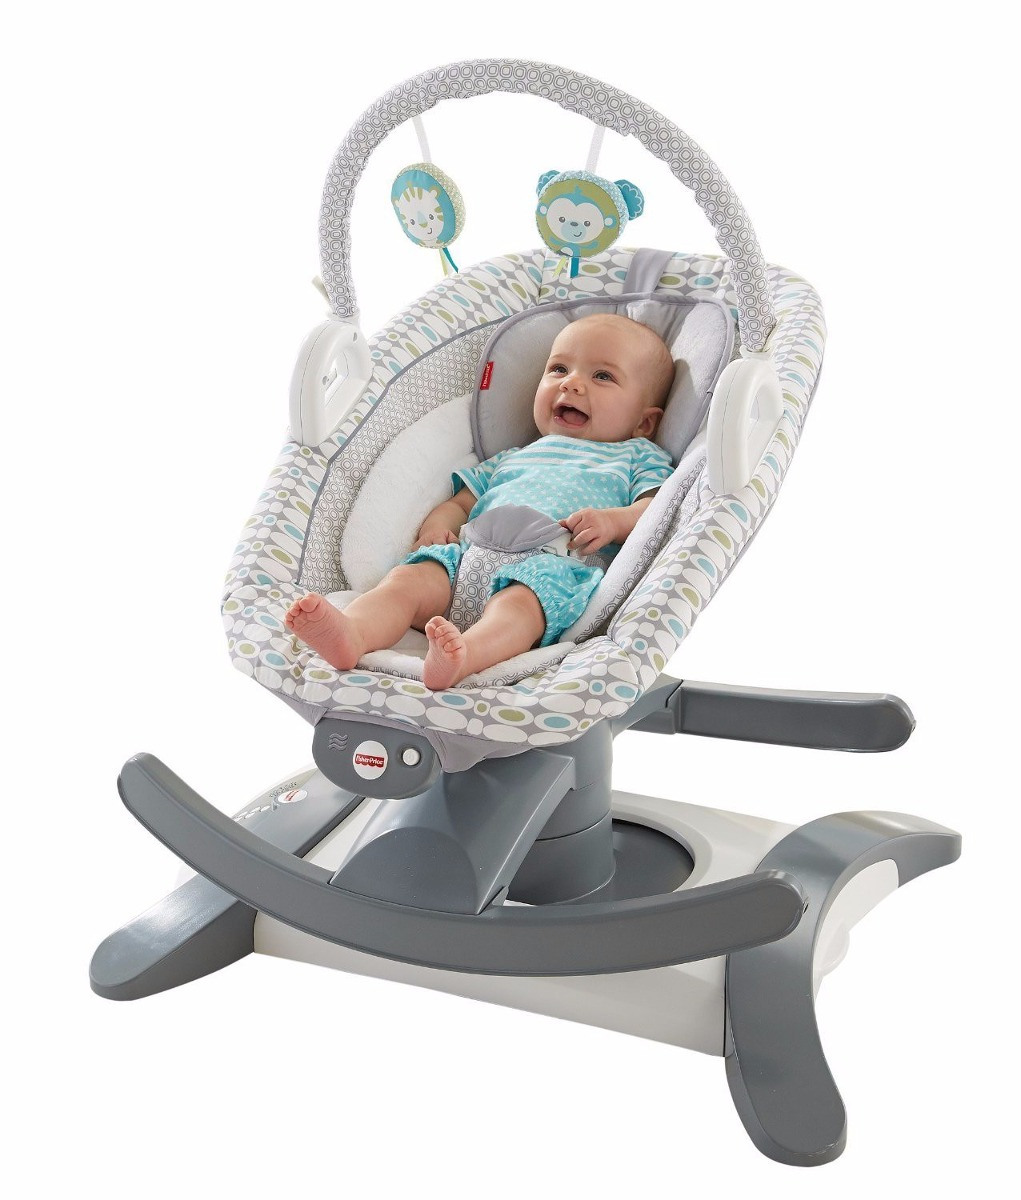 Mecedora bouncer bebe fisher price 4 in 1 rockn glide for Silla 4 en 1 fisher price